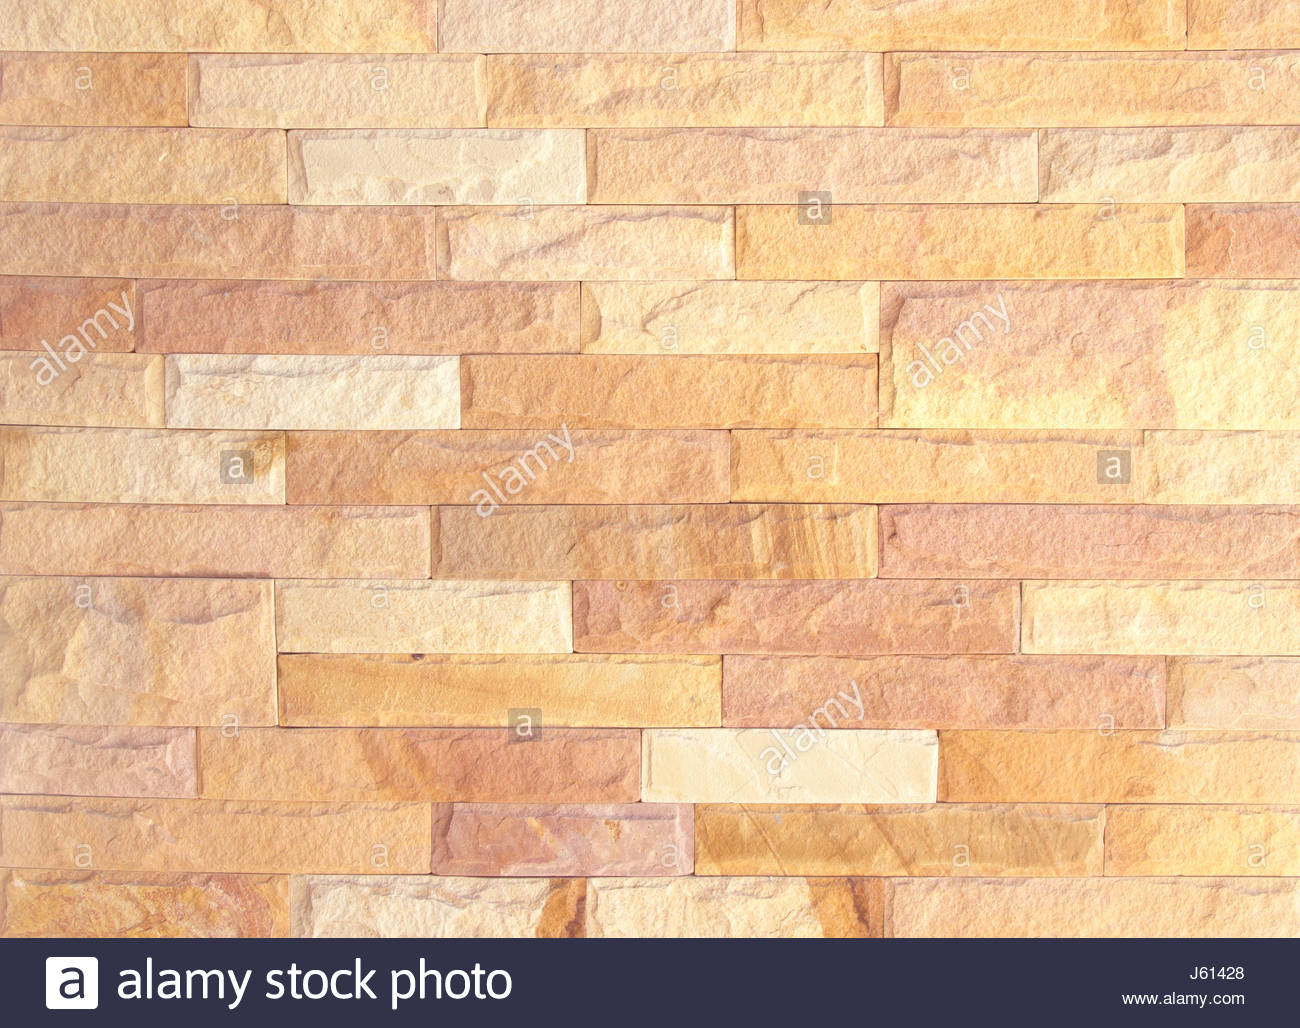 Awesome Decorative Stone Wall Panels Uk Images - The Wall Art ...